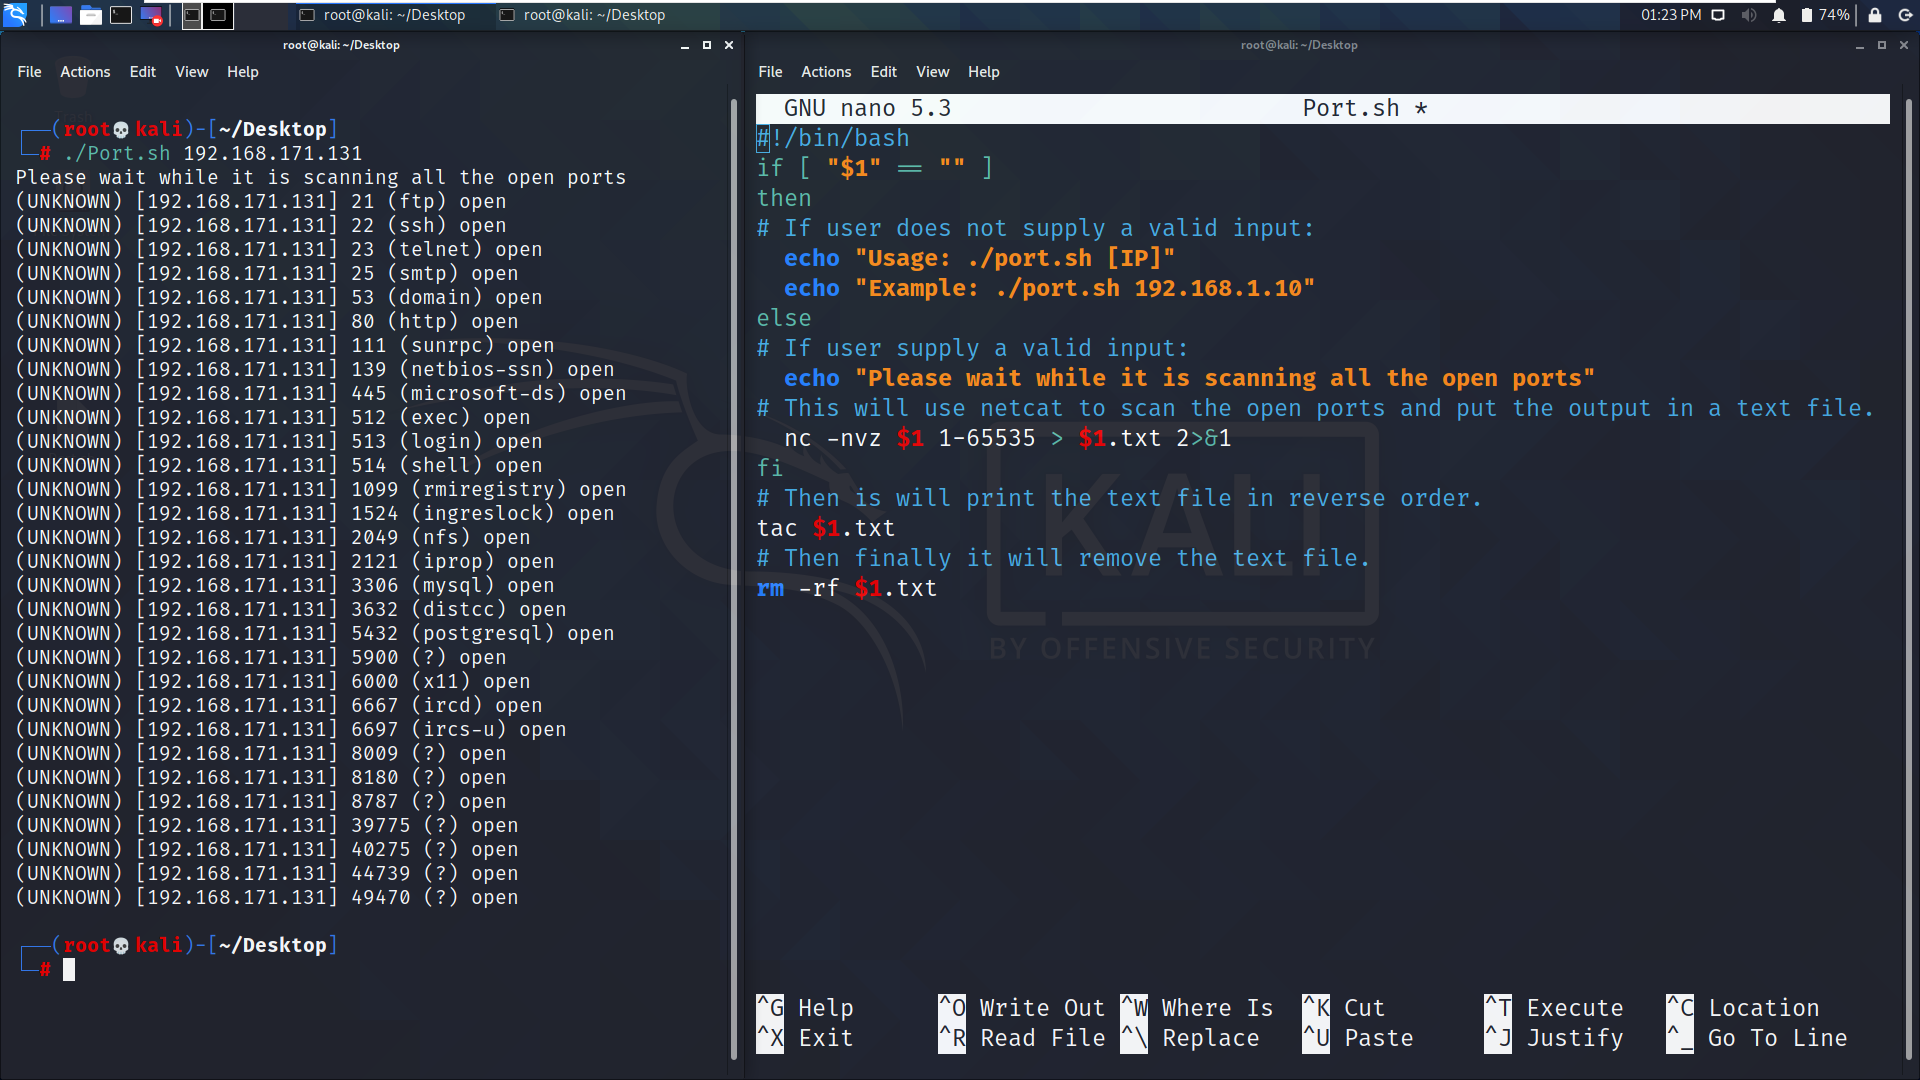 How to code your own port scanner using BASH script and netcat tool